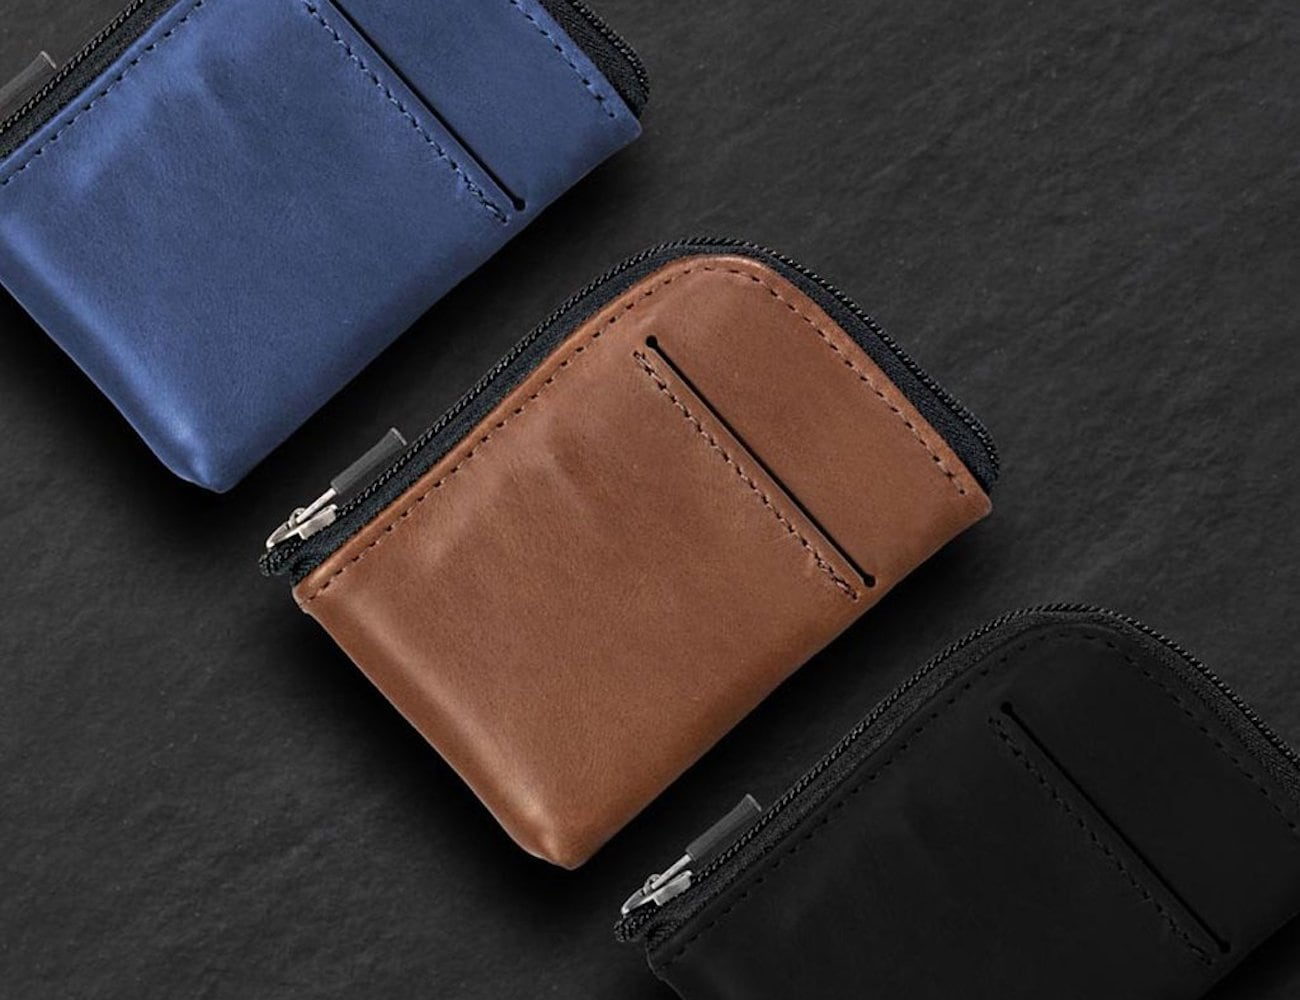 WaterField Designs Finn Access Wallet Leather Minimalist Everyday Carry holds all your essentials